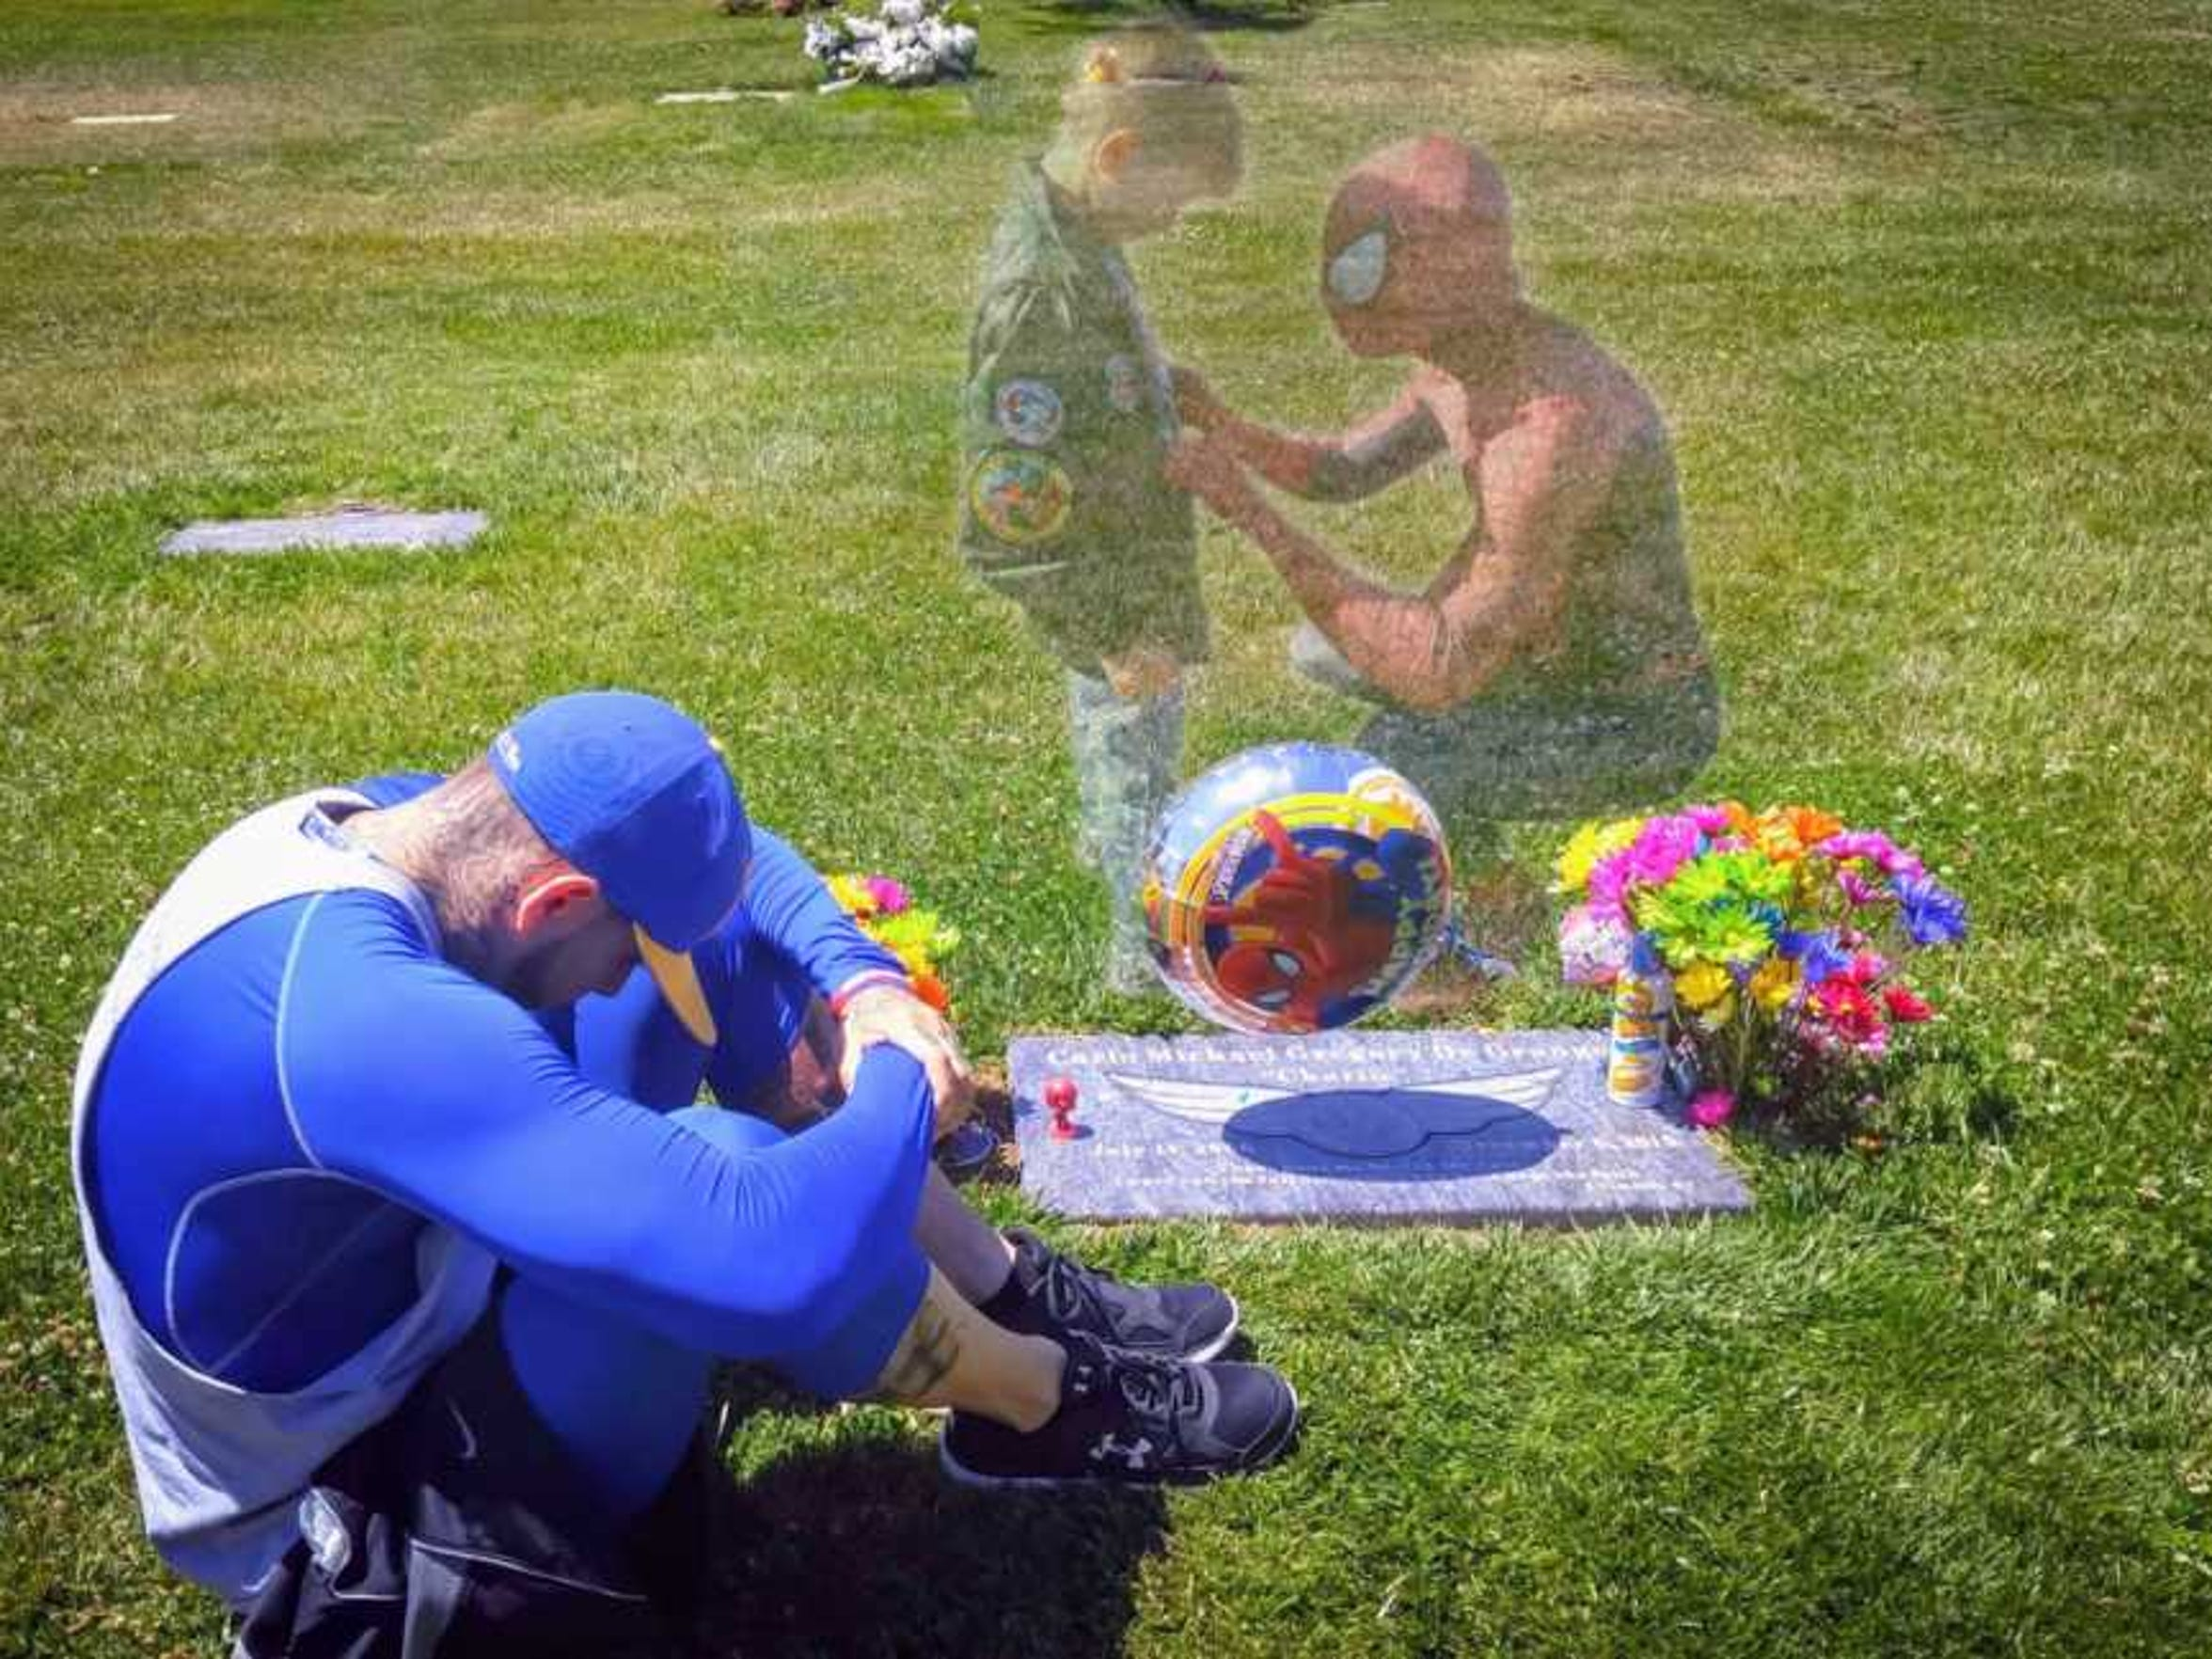 Ricky Mena uses this illustration to depict his emotions while visiting the grave site of a child who passed away.